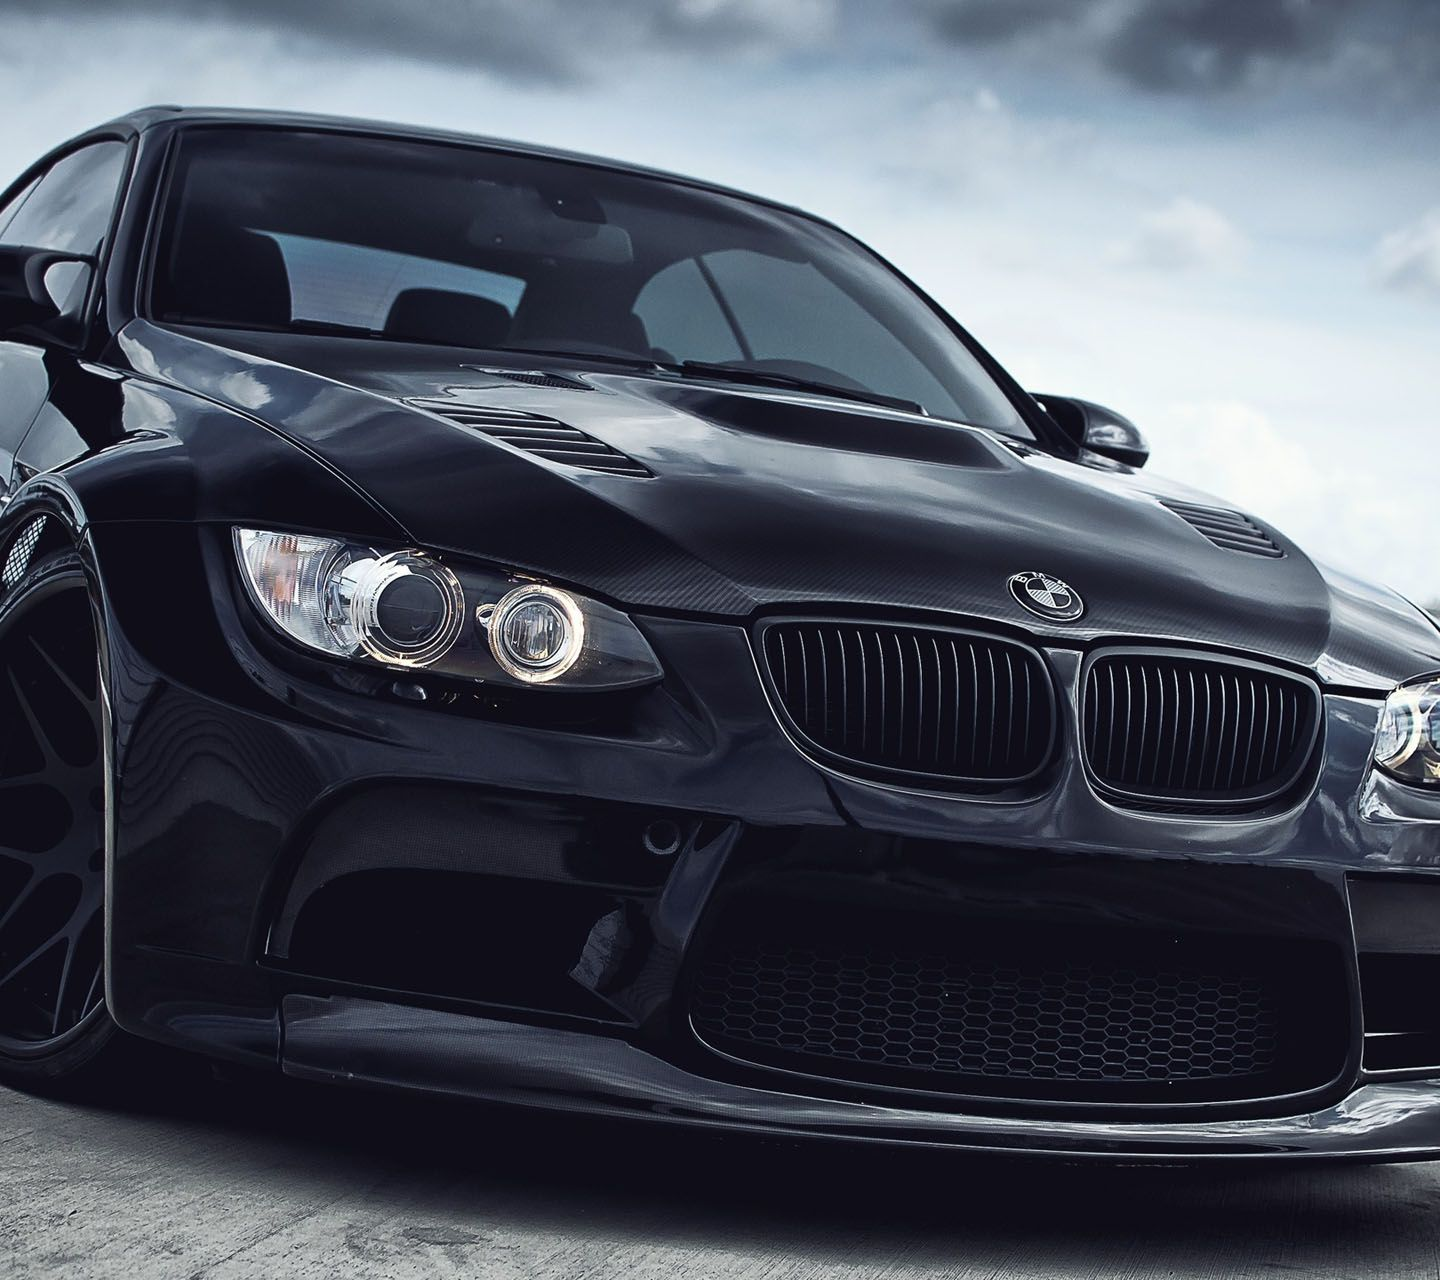 Blacked Out Bmw M3 Closeup With Images Super Car Racing Bmw